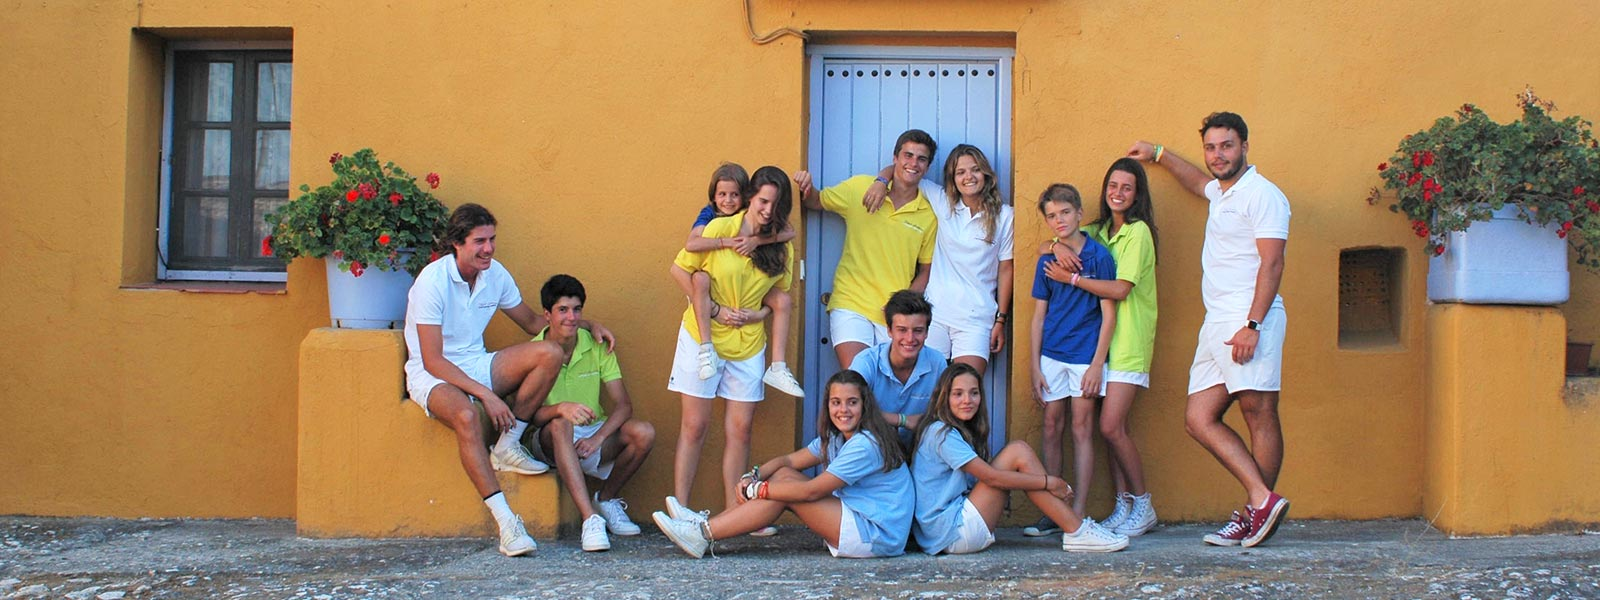 Sotograndecamps - A unique concepto of Summer Camp in Spain